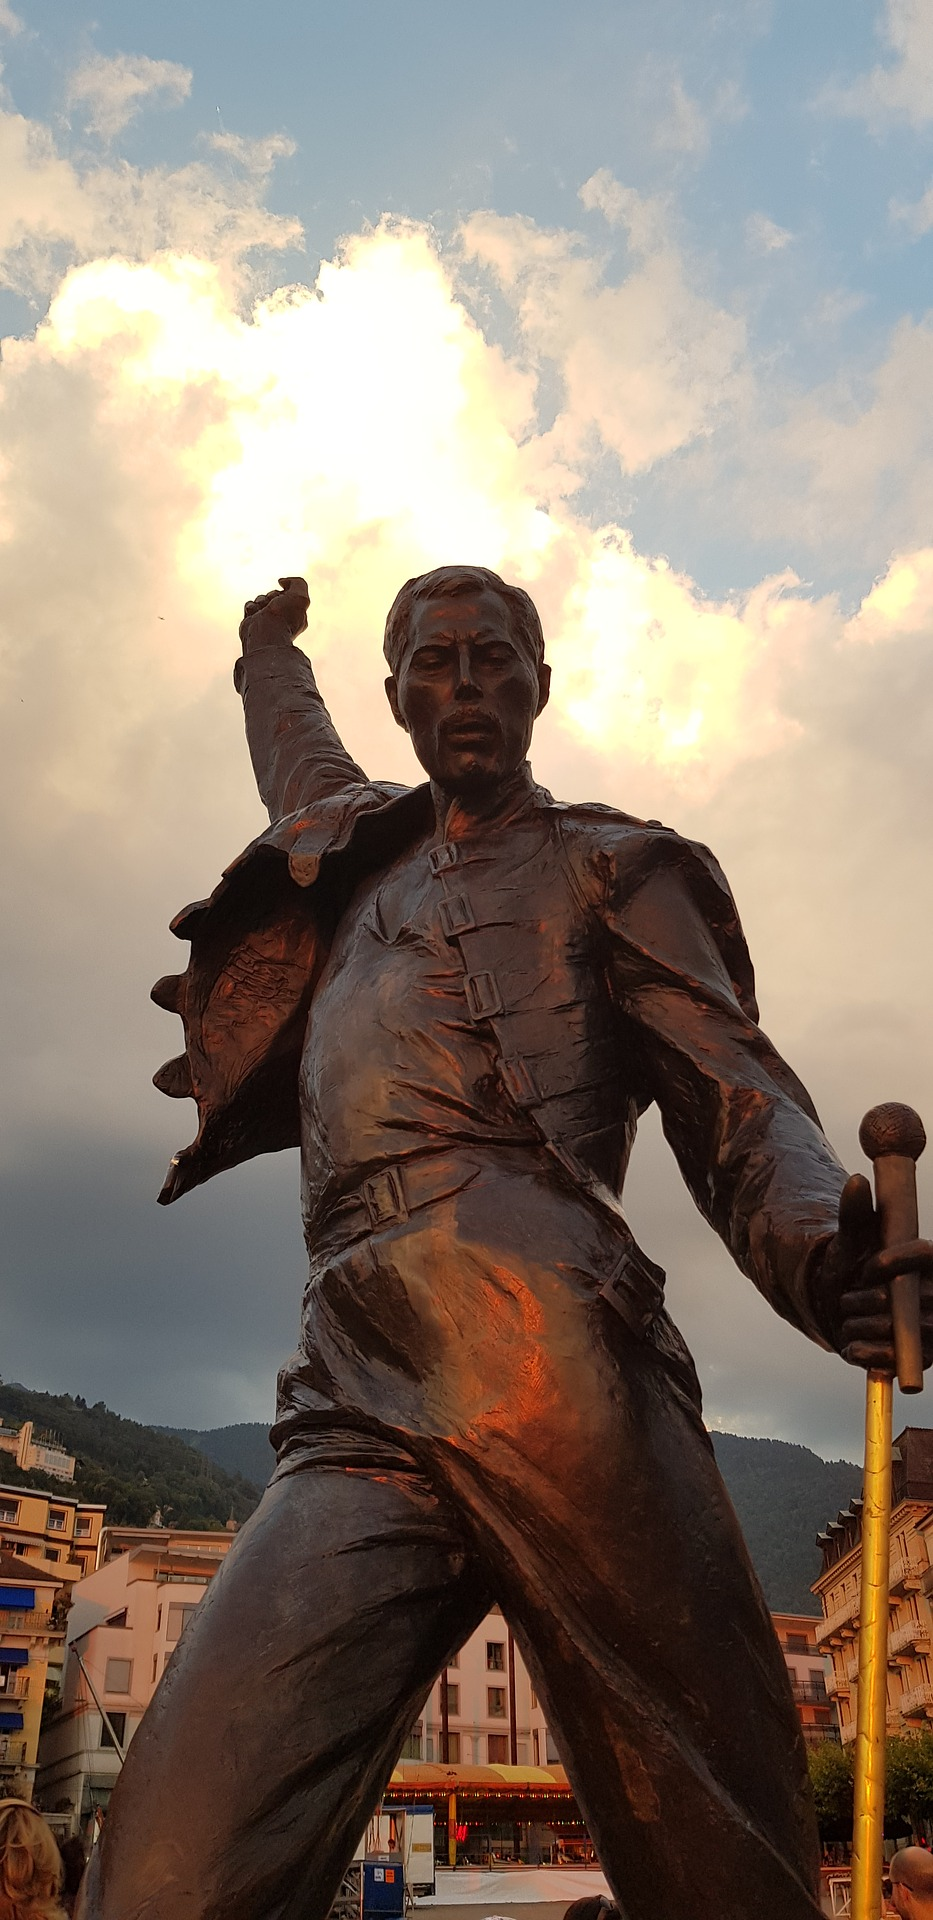 This bronze statue of Freddie Mercury has been at the lakeside promenade in Montreux since 1996 in his memory. In 1978, the singer came to the Montreux Jazz Festival to record the album 'Jazz' with Queen. He fell in love with Montreux and Lake Geneva and decided to settle there.